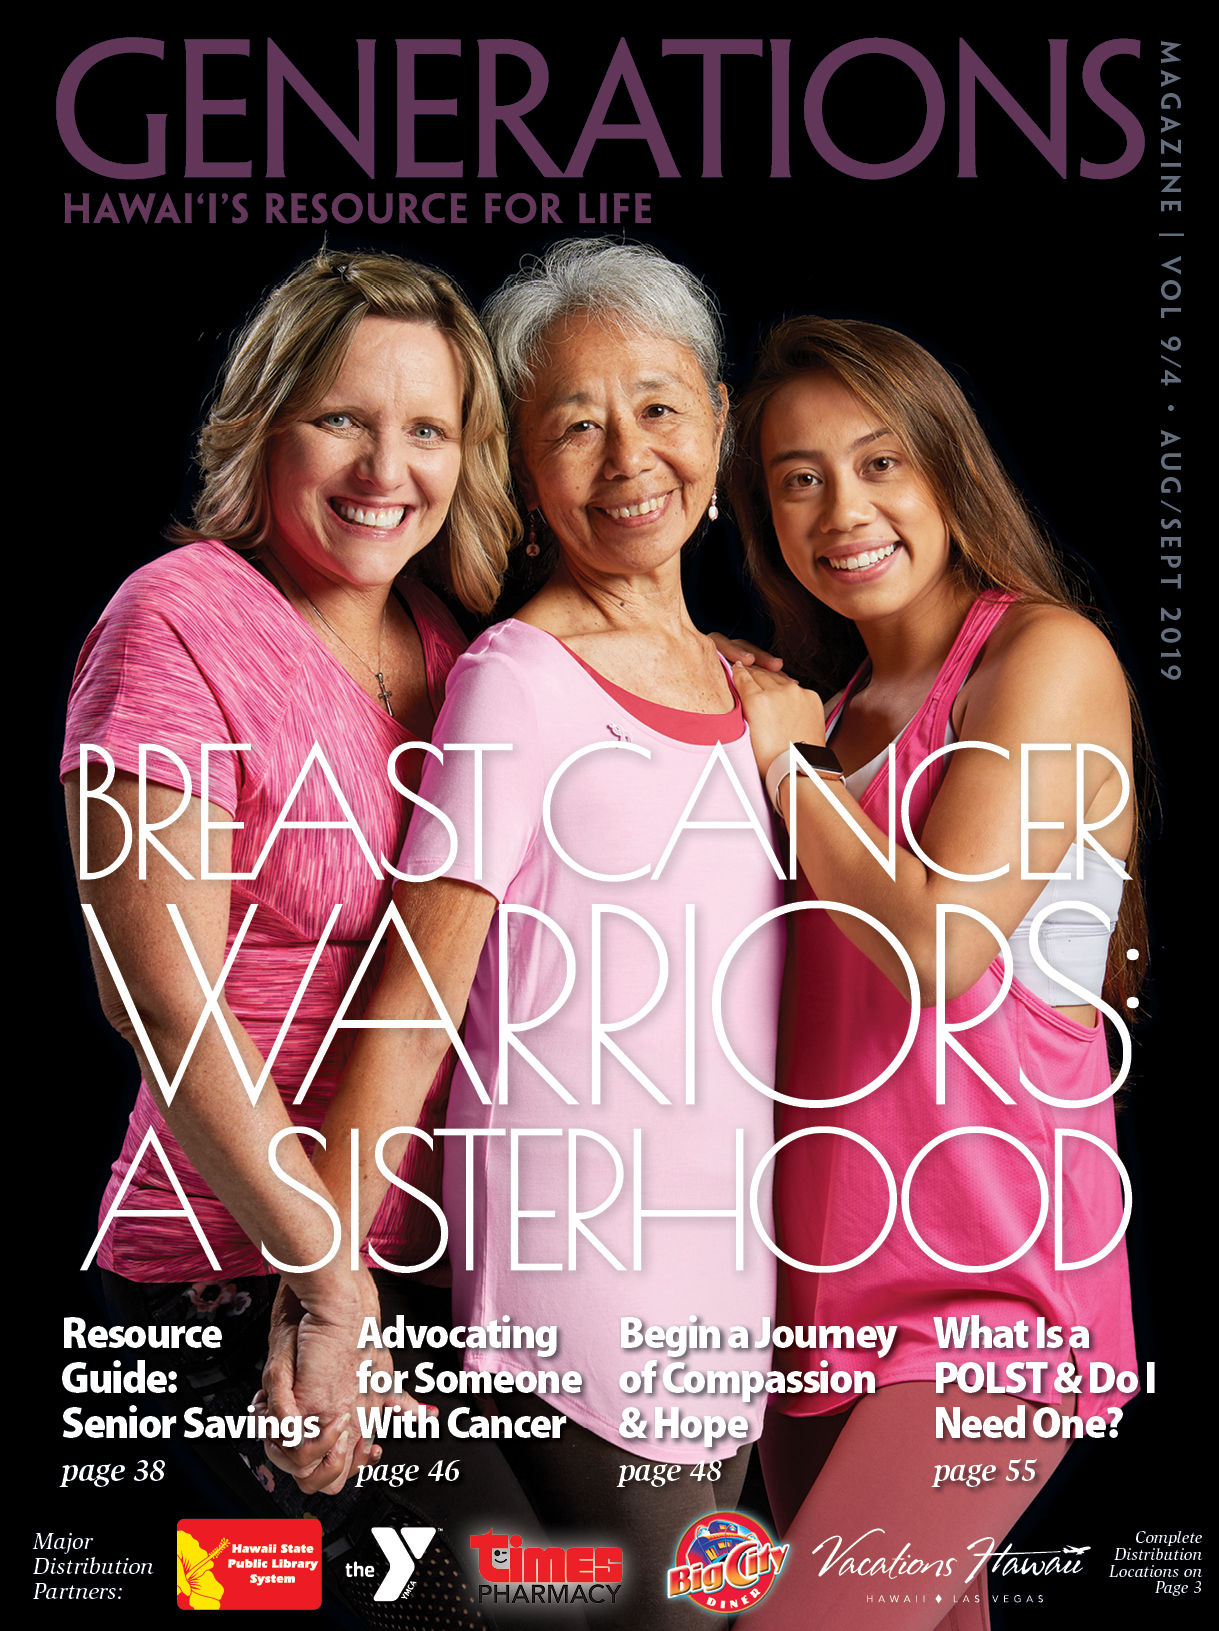 GM_AugSept2019-CvrBreastCancer